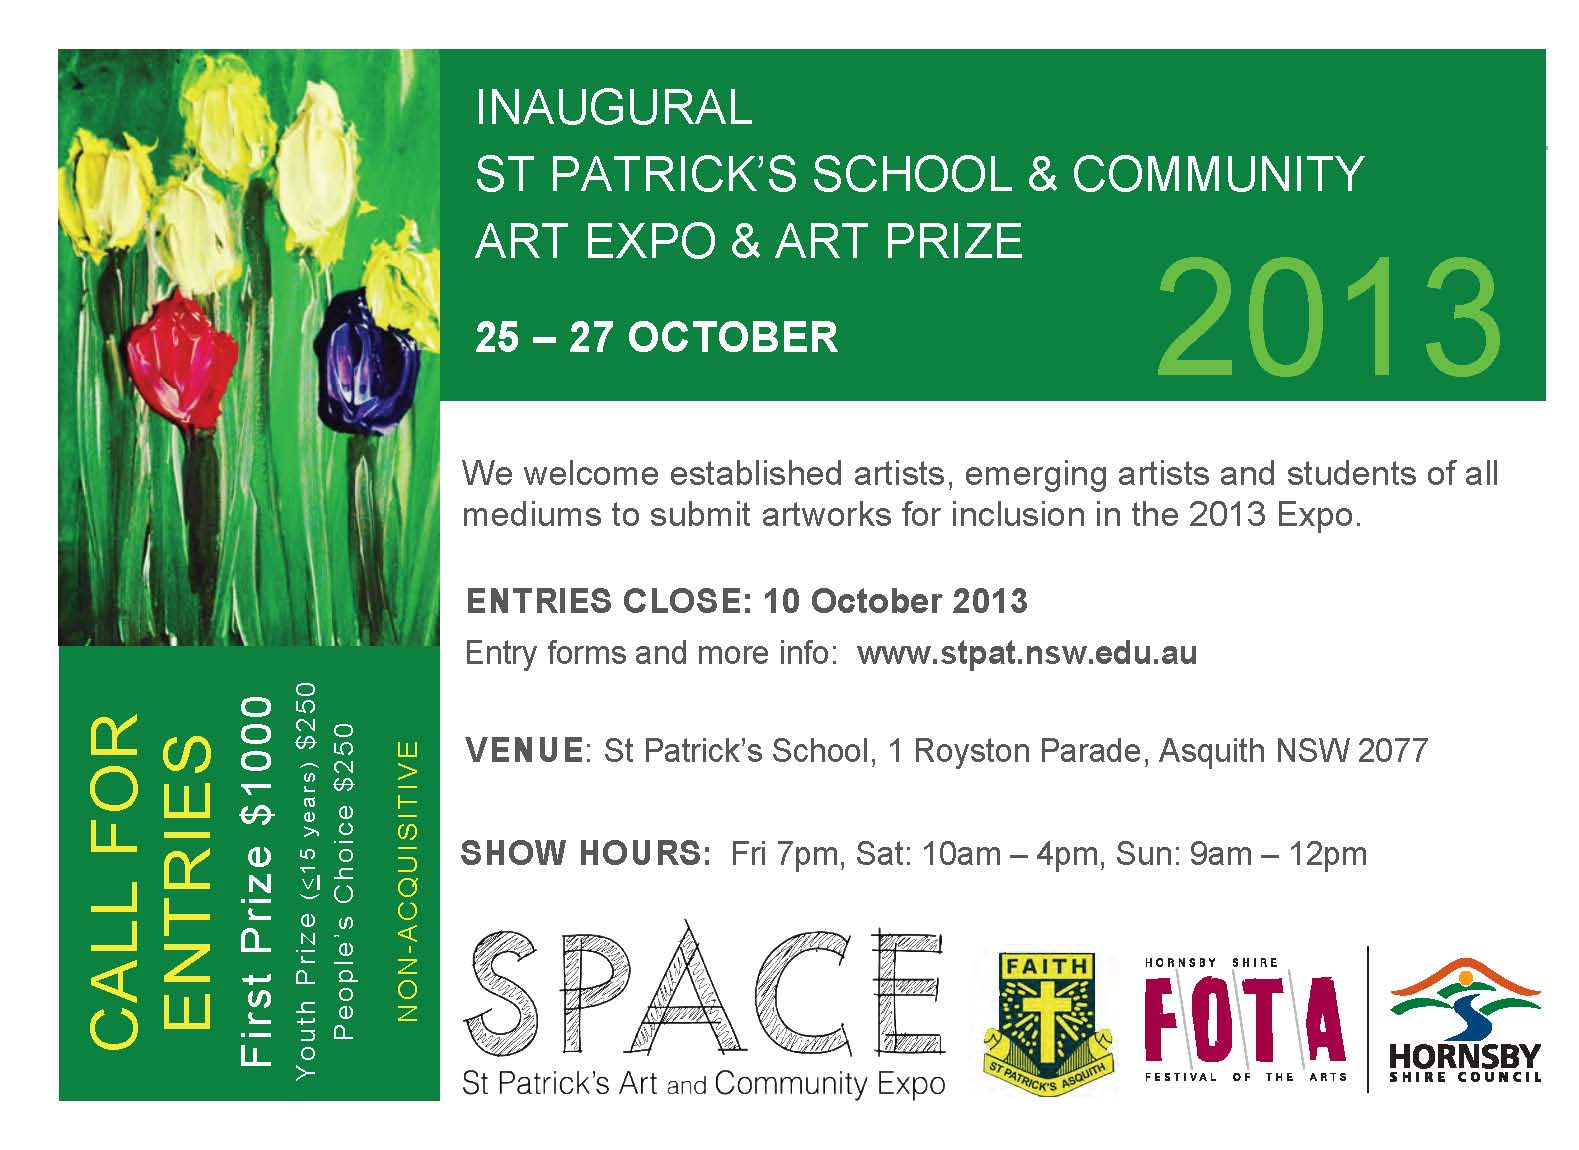 SPACE - St Patrick's School and Community Art Prize and Exhibition